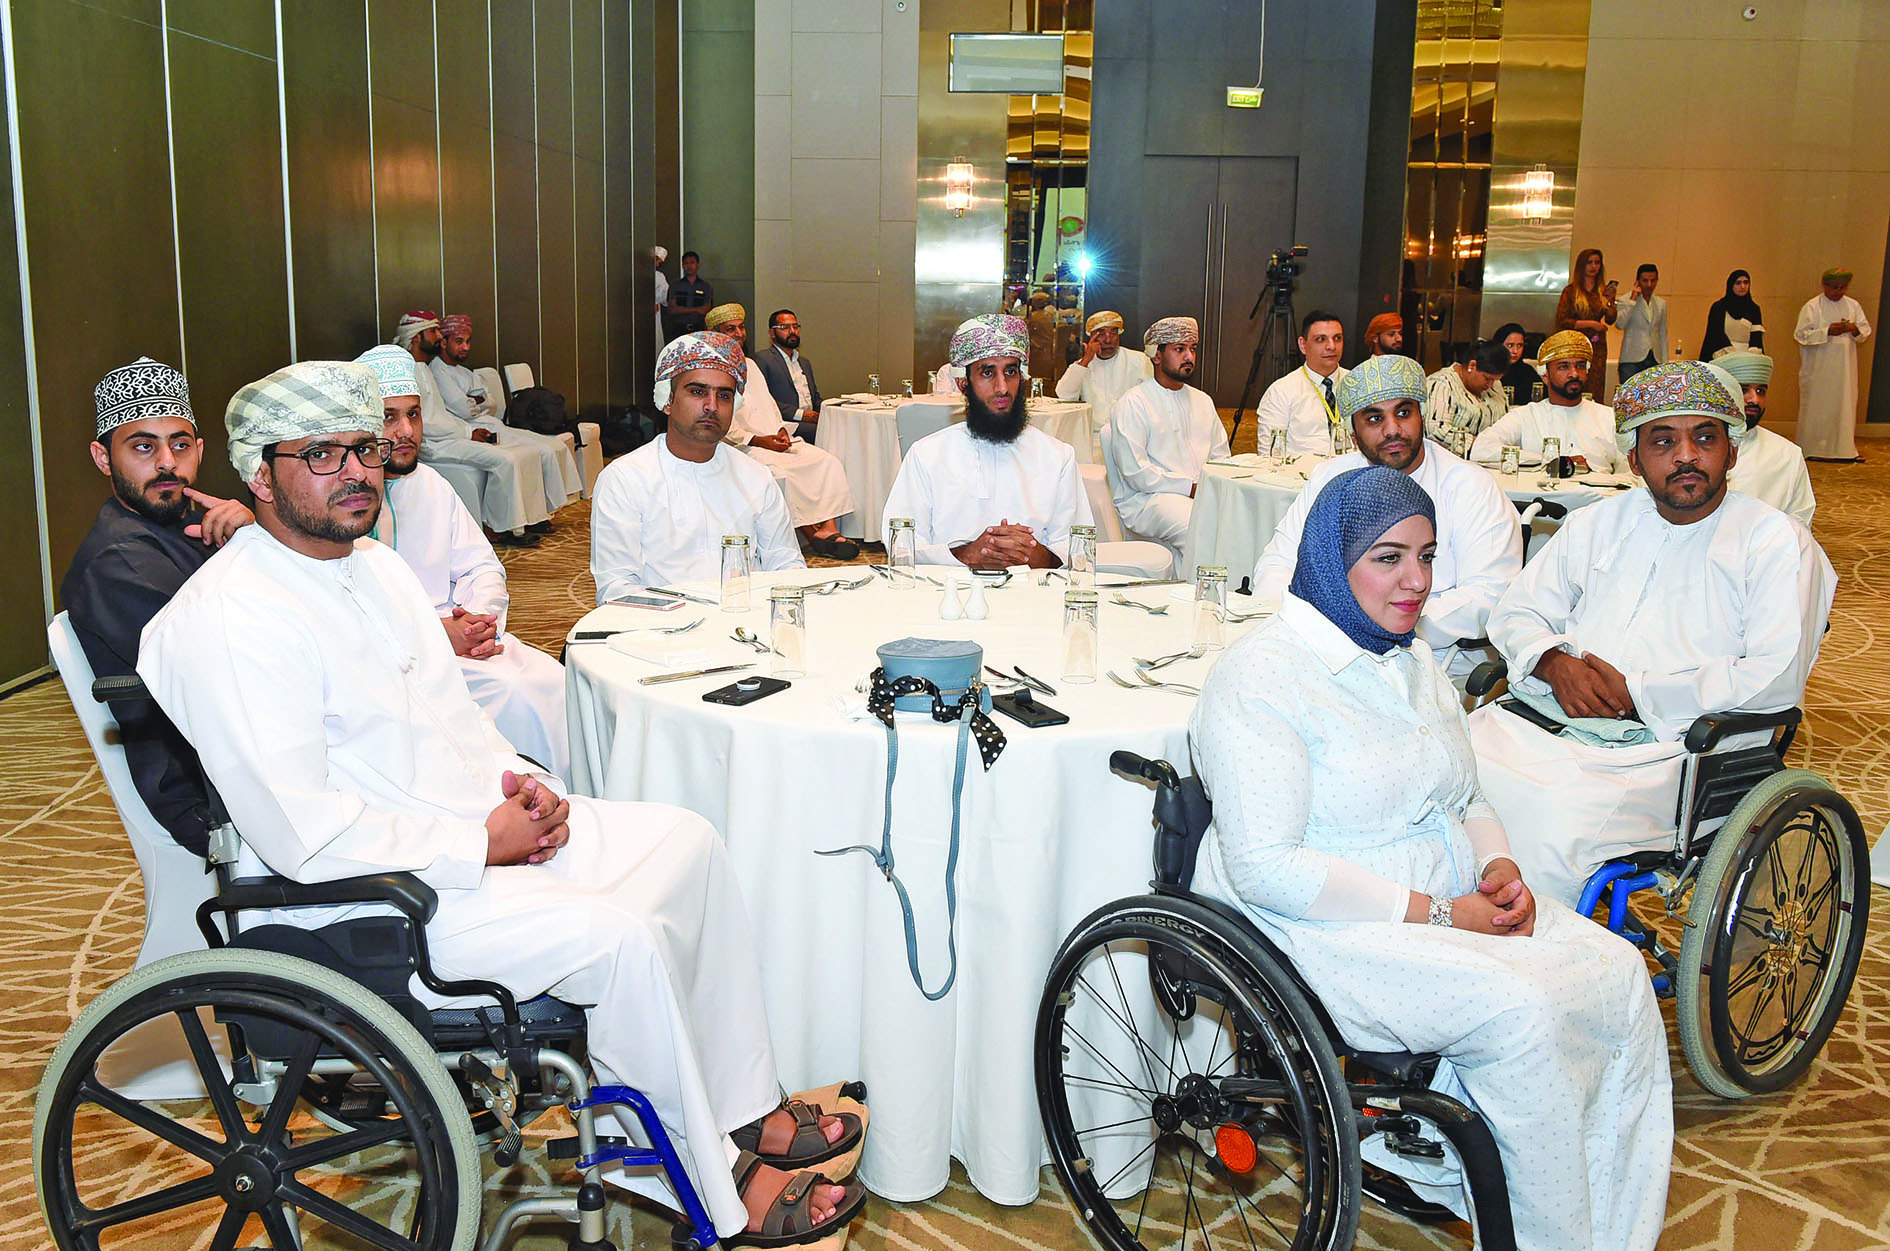 More than 6,500 people with special needs working in private sector